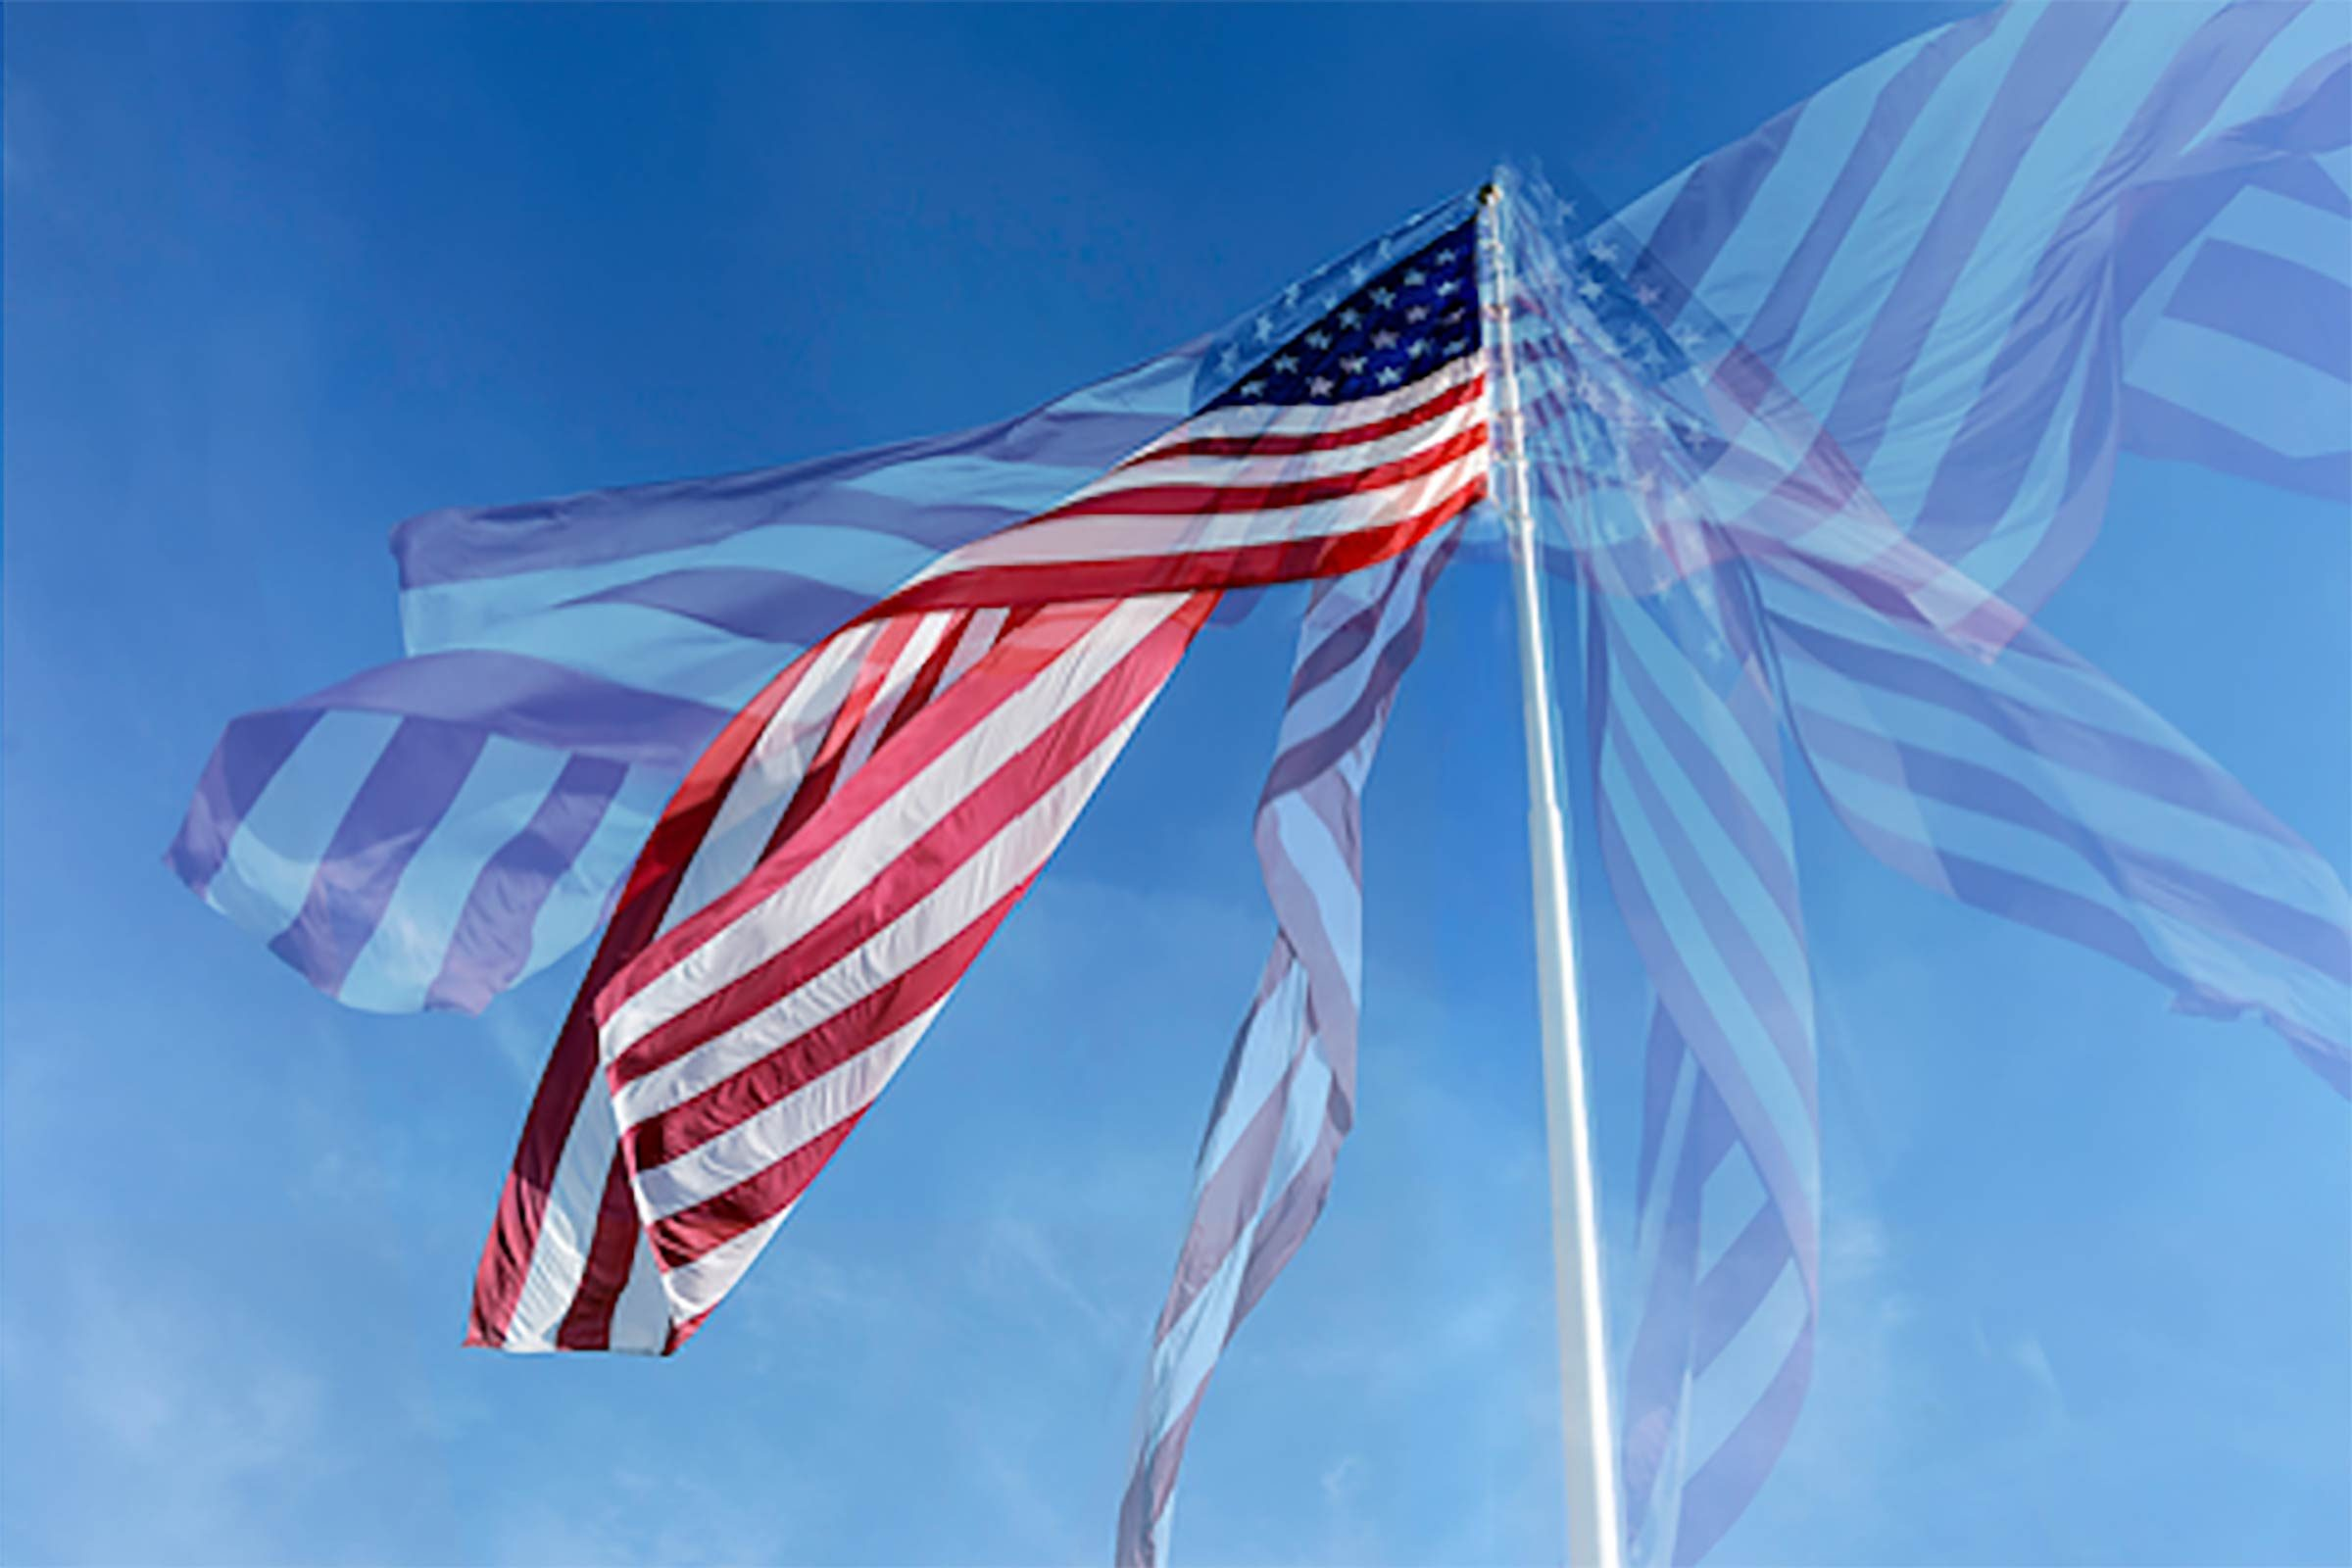 a multiple exposure image of an american flag waving against a blue sky